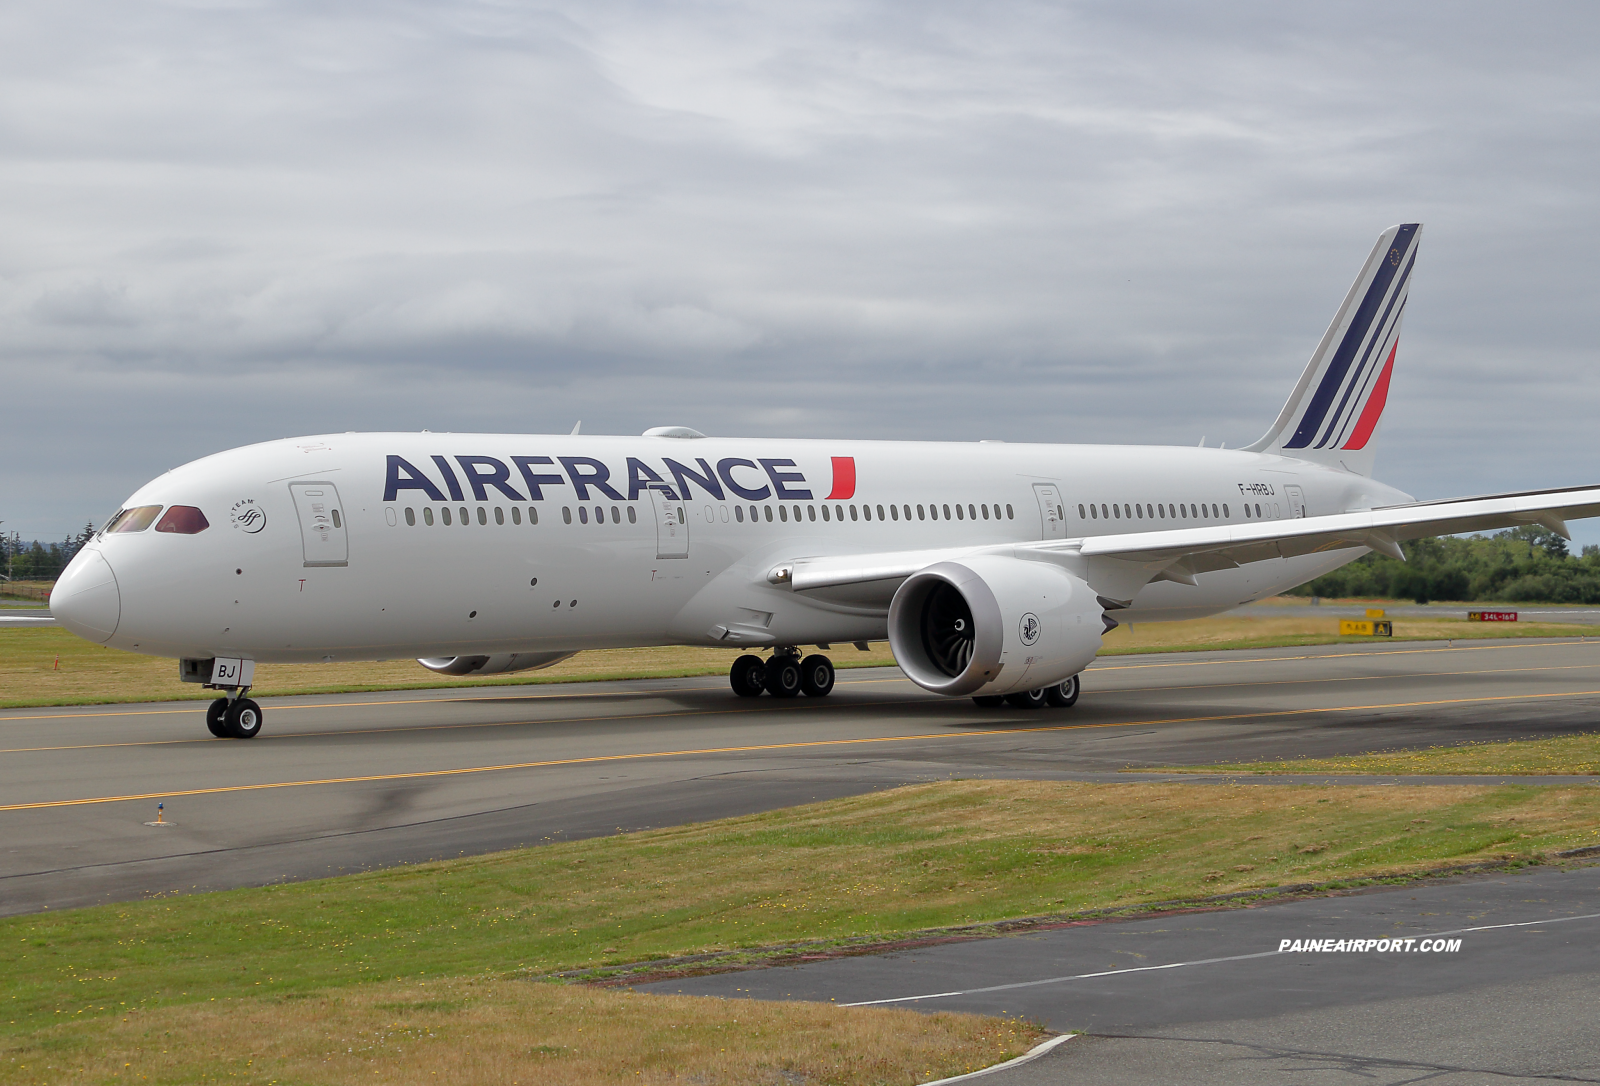 Air France 787-9 F-HRBJ at KPAE Paine Field